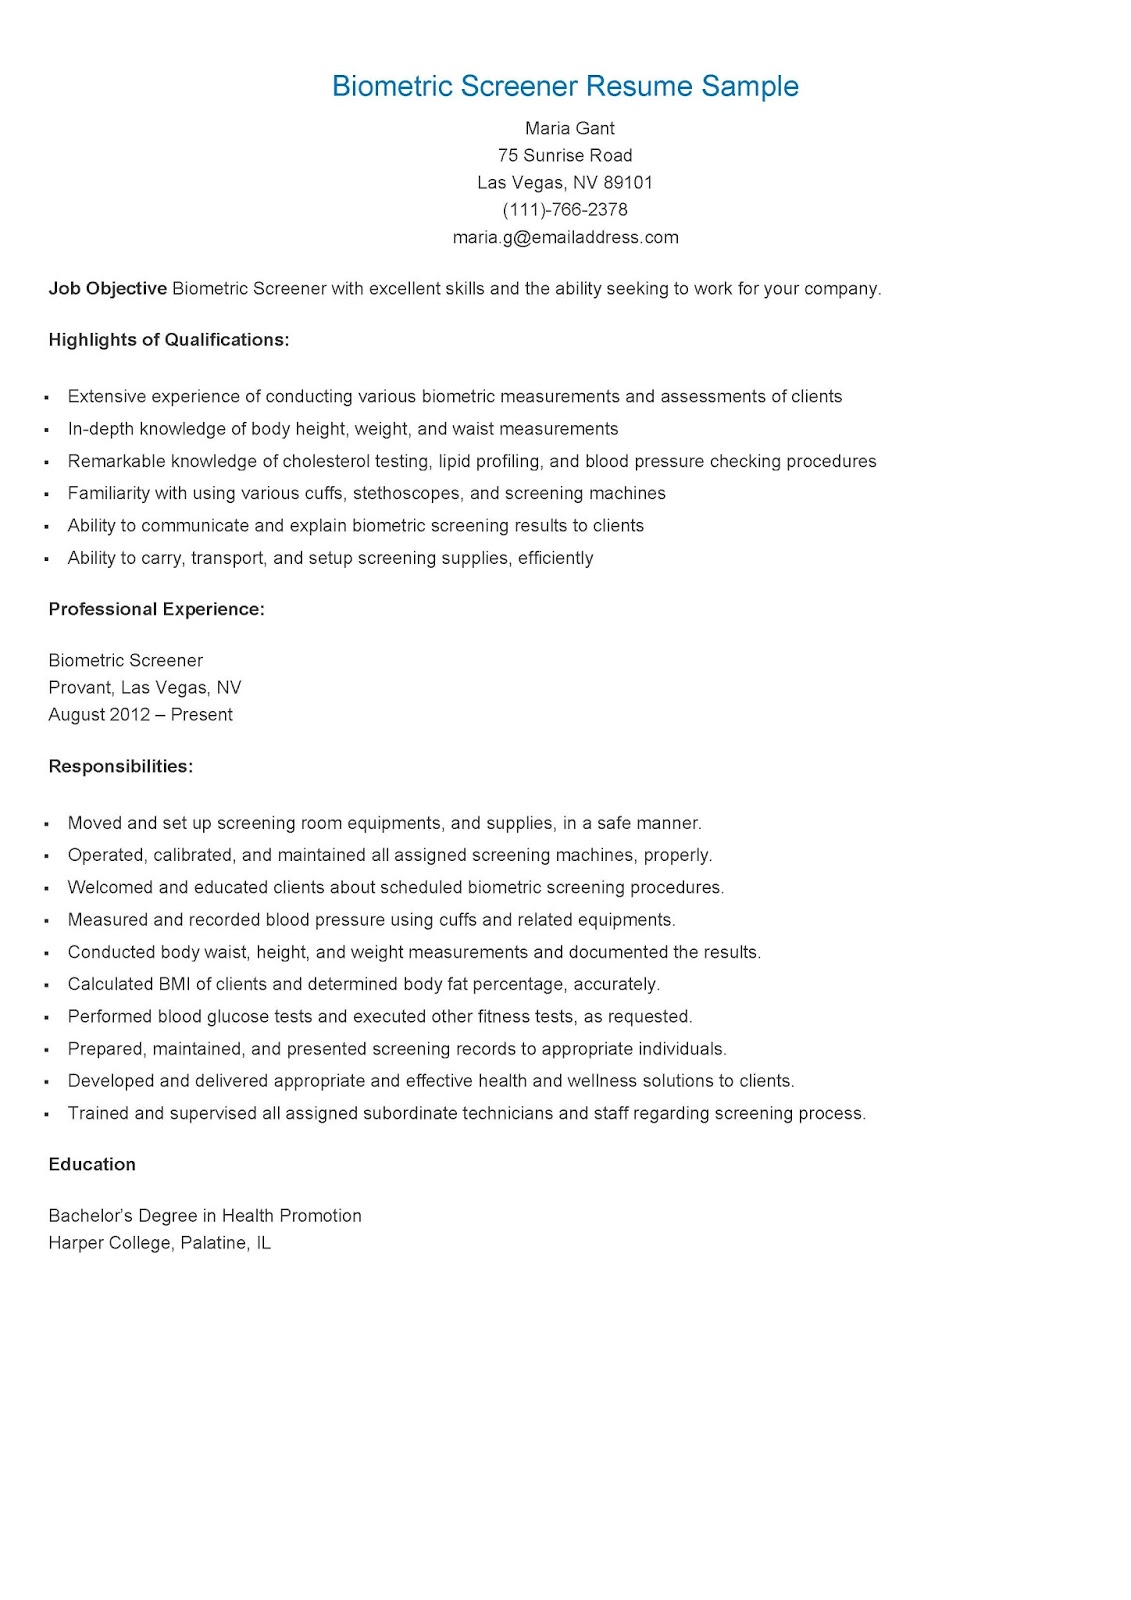 Rv Resume Resume Samples Biometric Screener Resume Sample